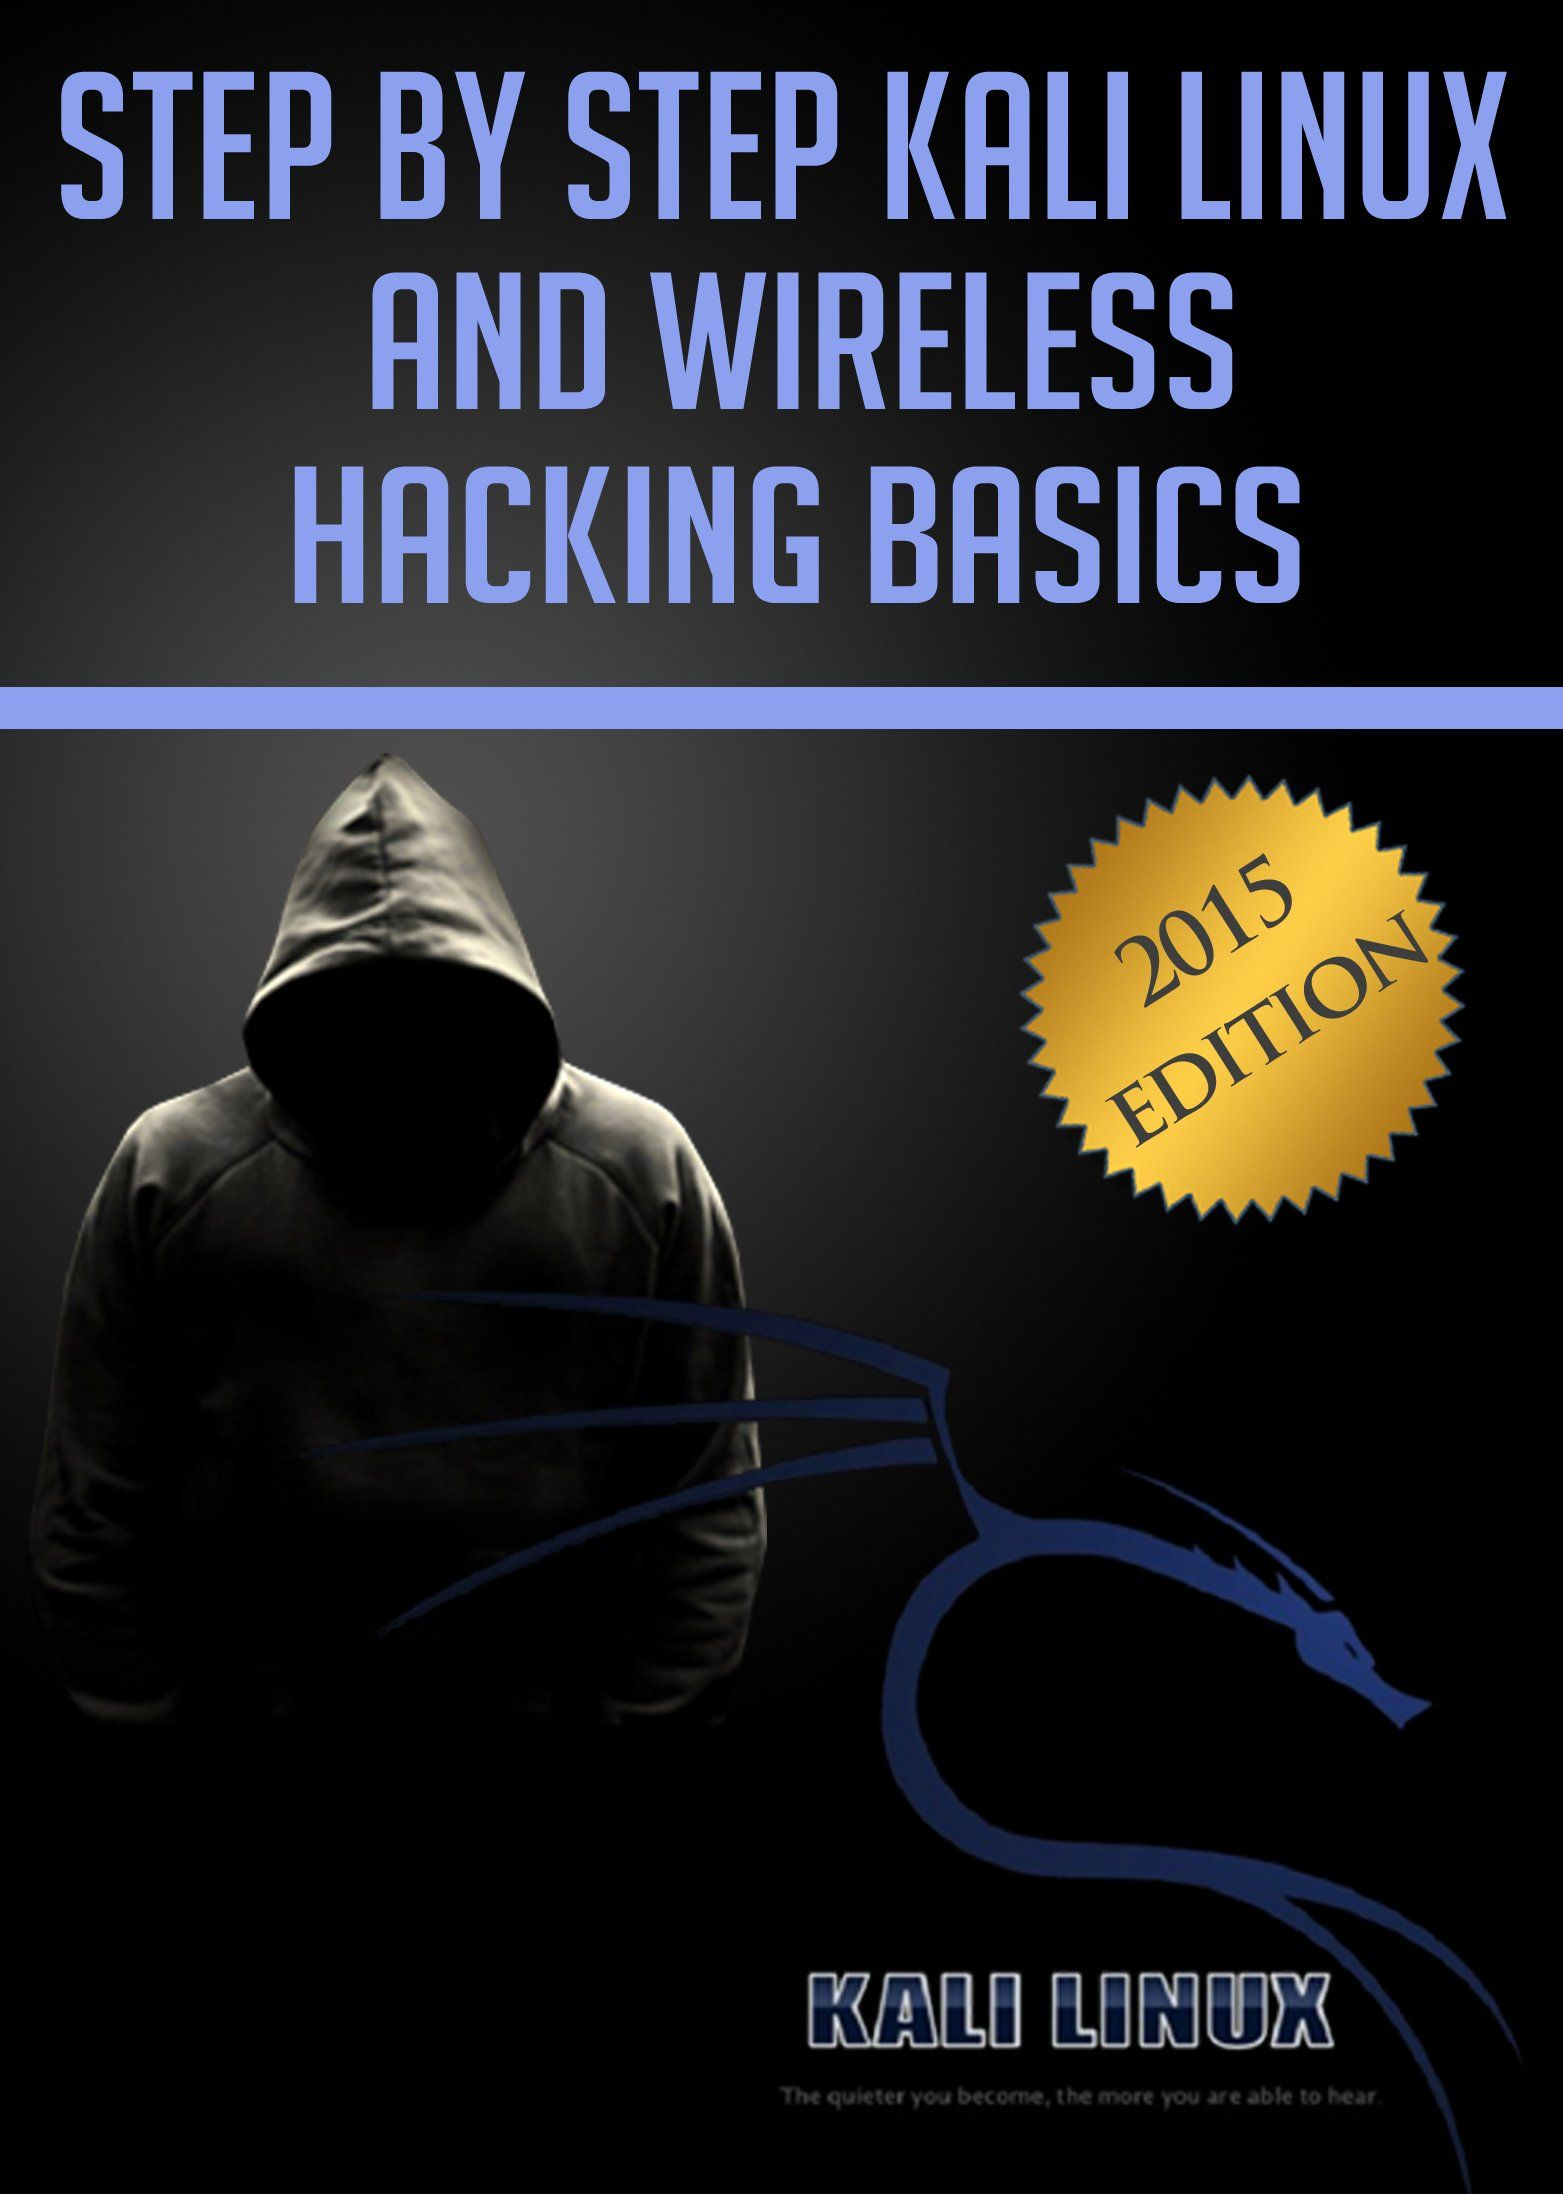 Step by step kali linux and wireless hacking basics 2015 edition step by step kali linux and wireless hacking basics 2015 editionamazonkindle baditri Images